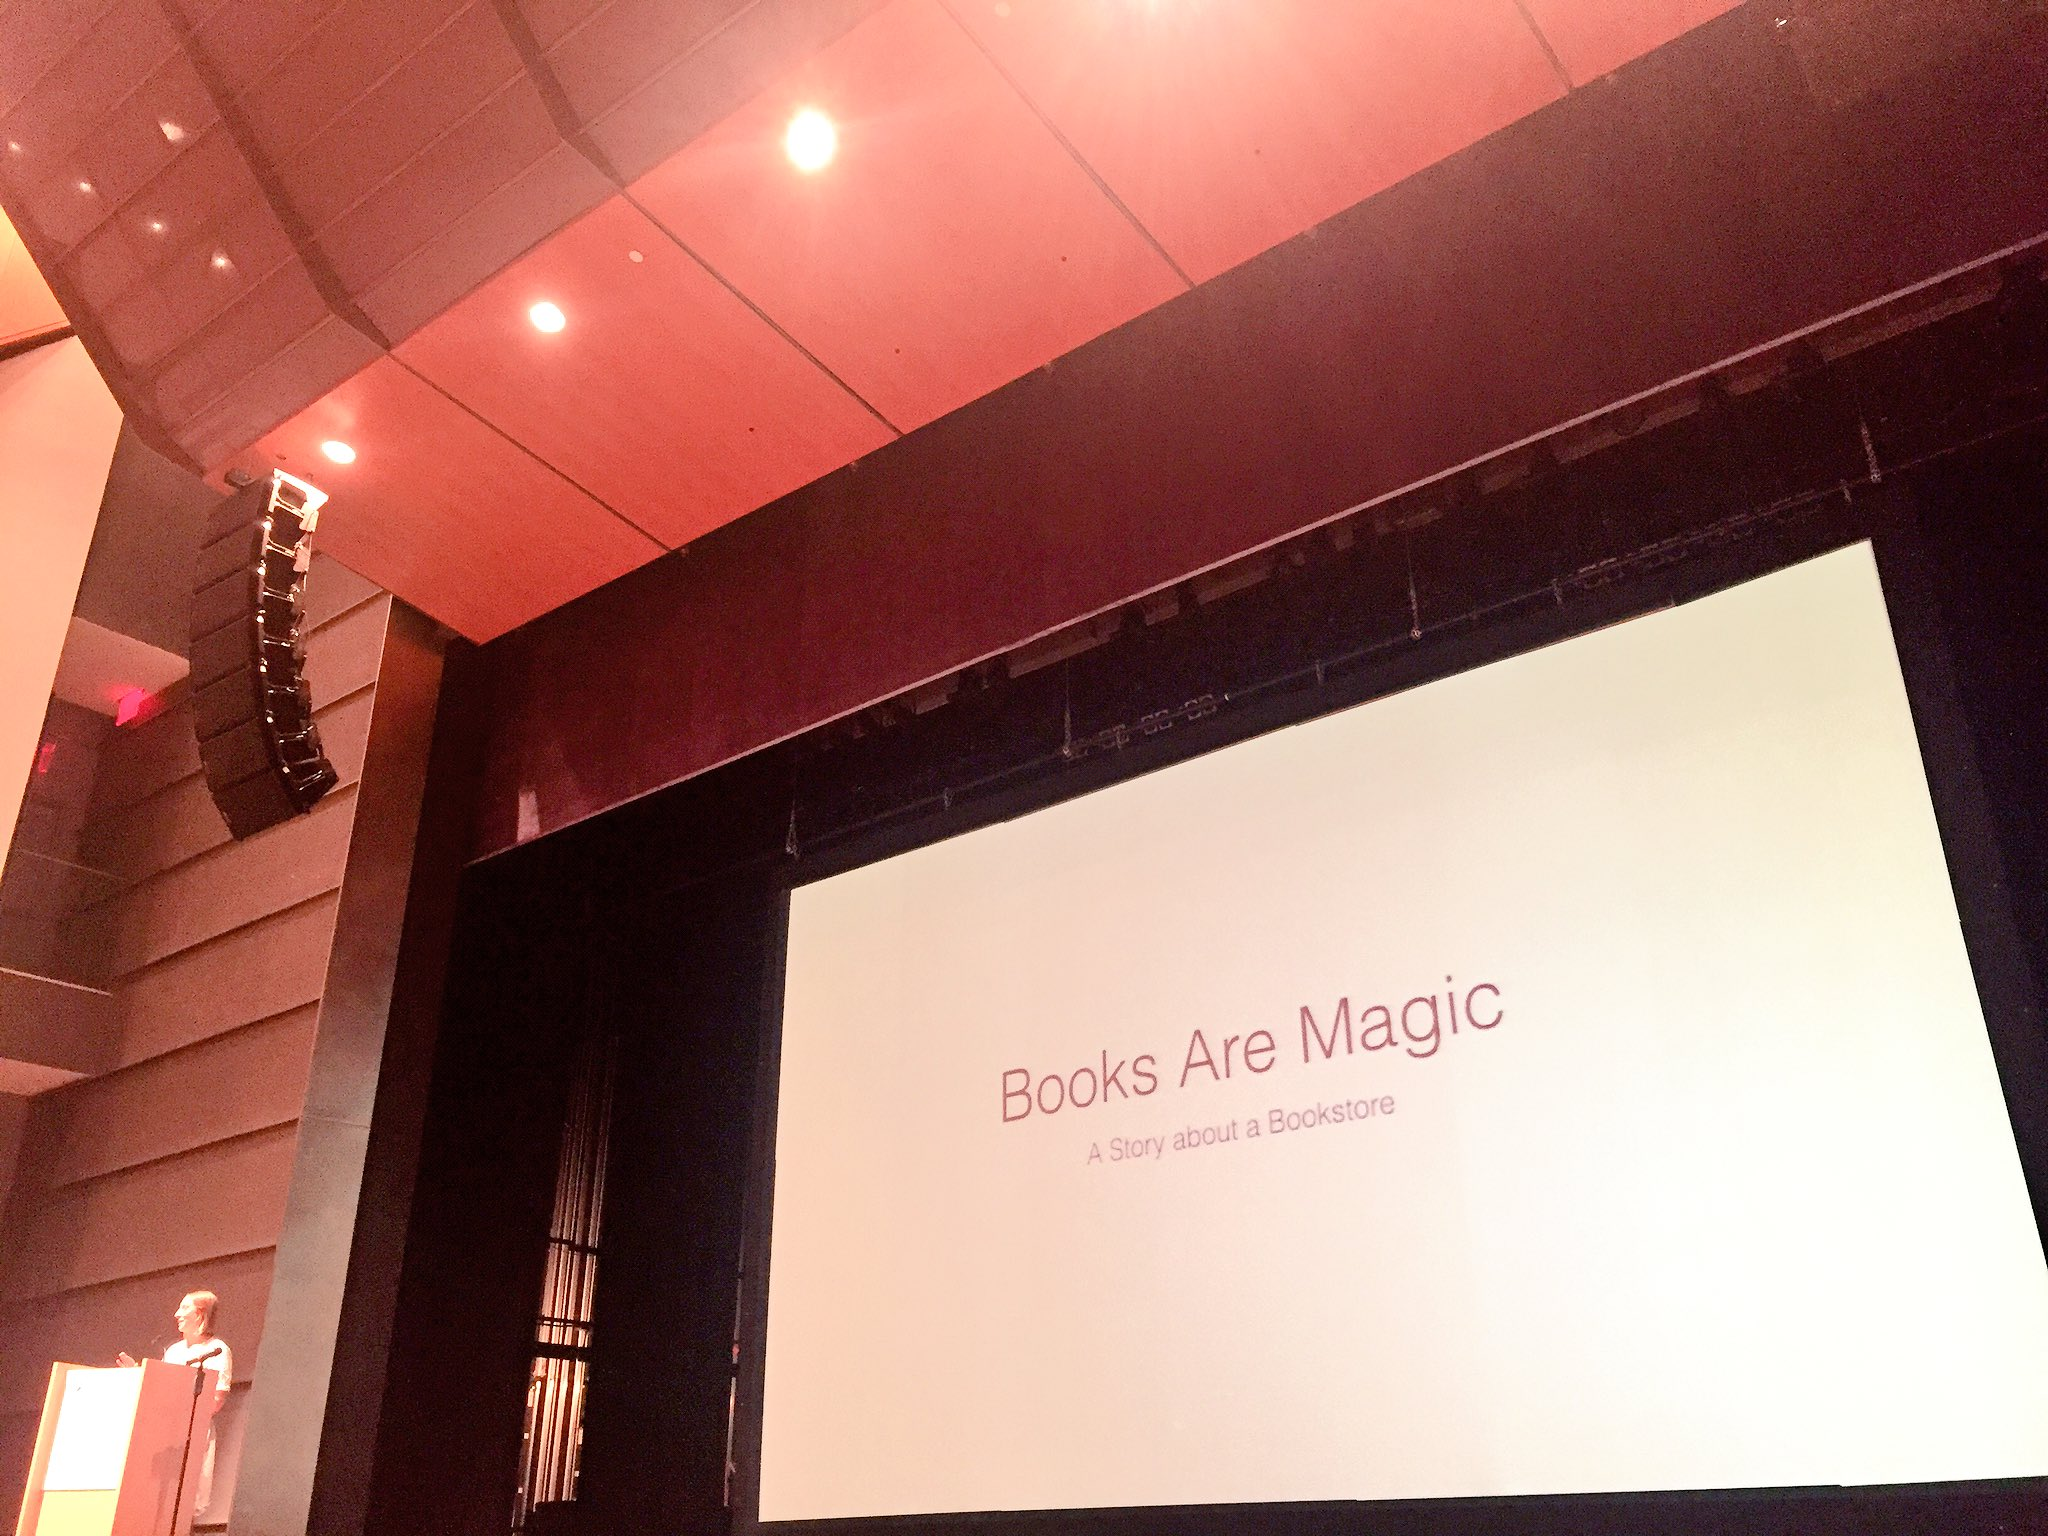 ✨ Listening to @emmastraub at the #ReadingMatters conference! We're so inspired by her bookstore @booksaremagicbk 📖✨ https://t.co/yFIaOqYQFs